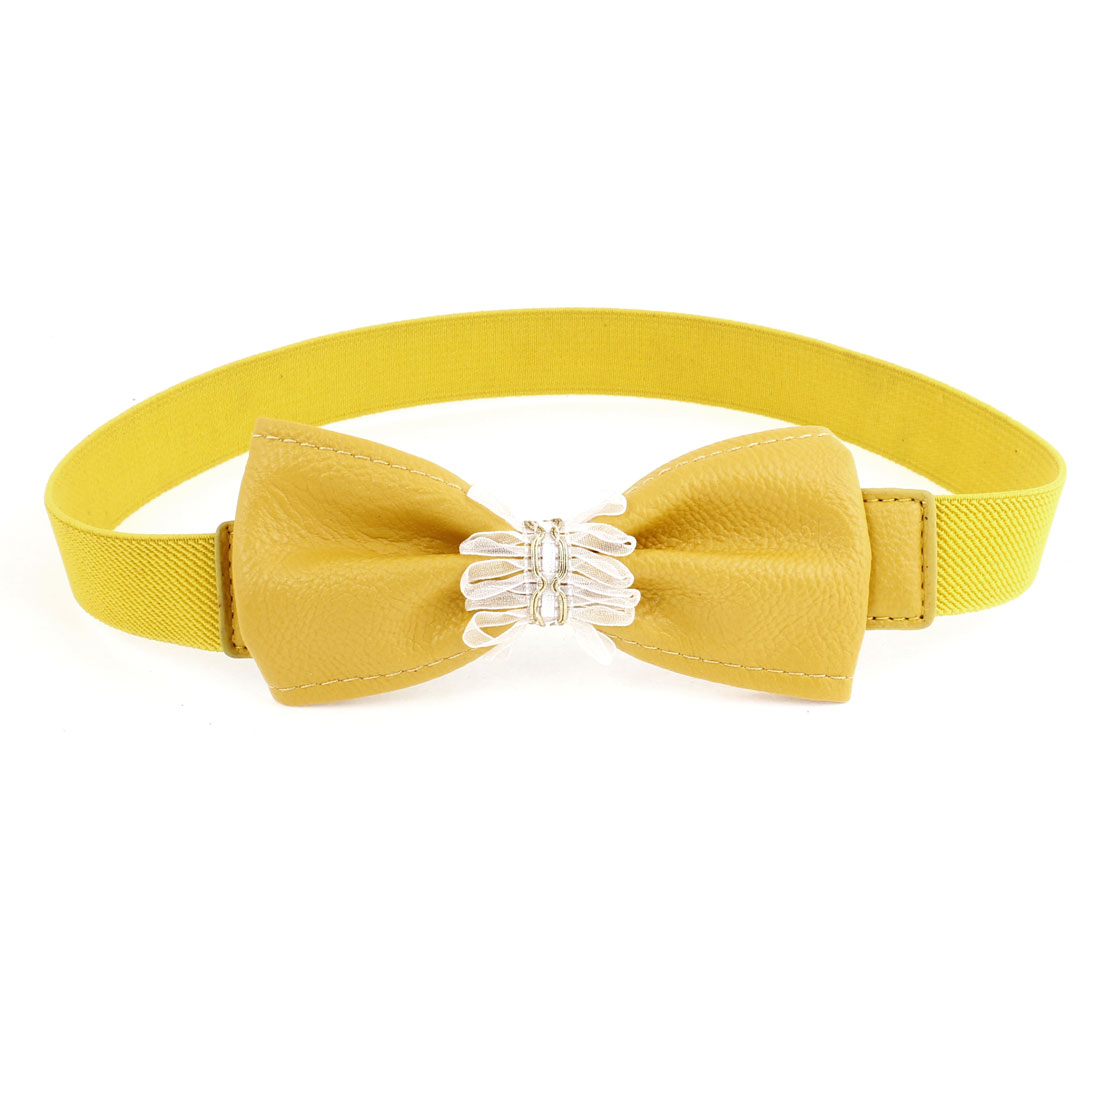 Faux Leather Bowknot Press Stud Button Cinch Skinny Waist Belt Yellow for Lady